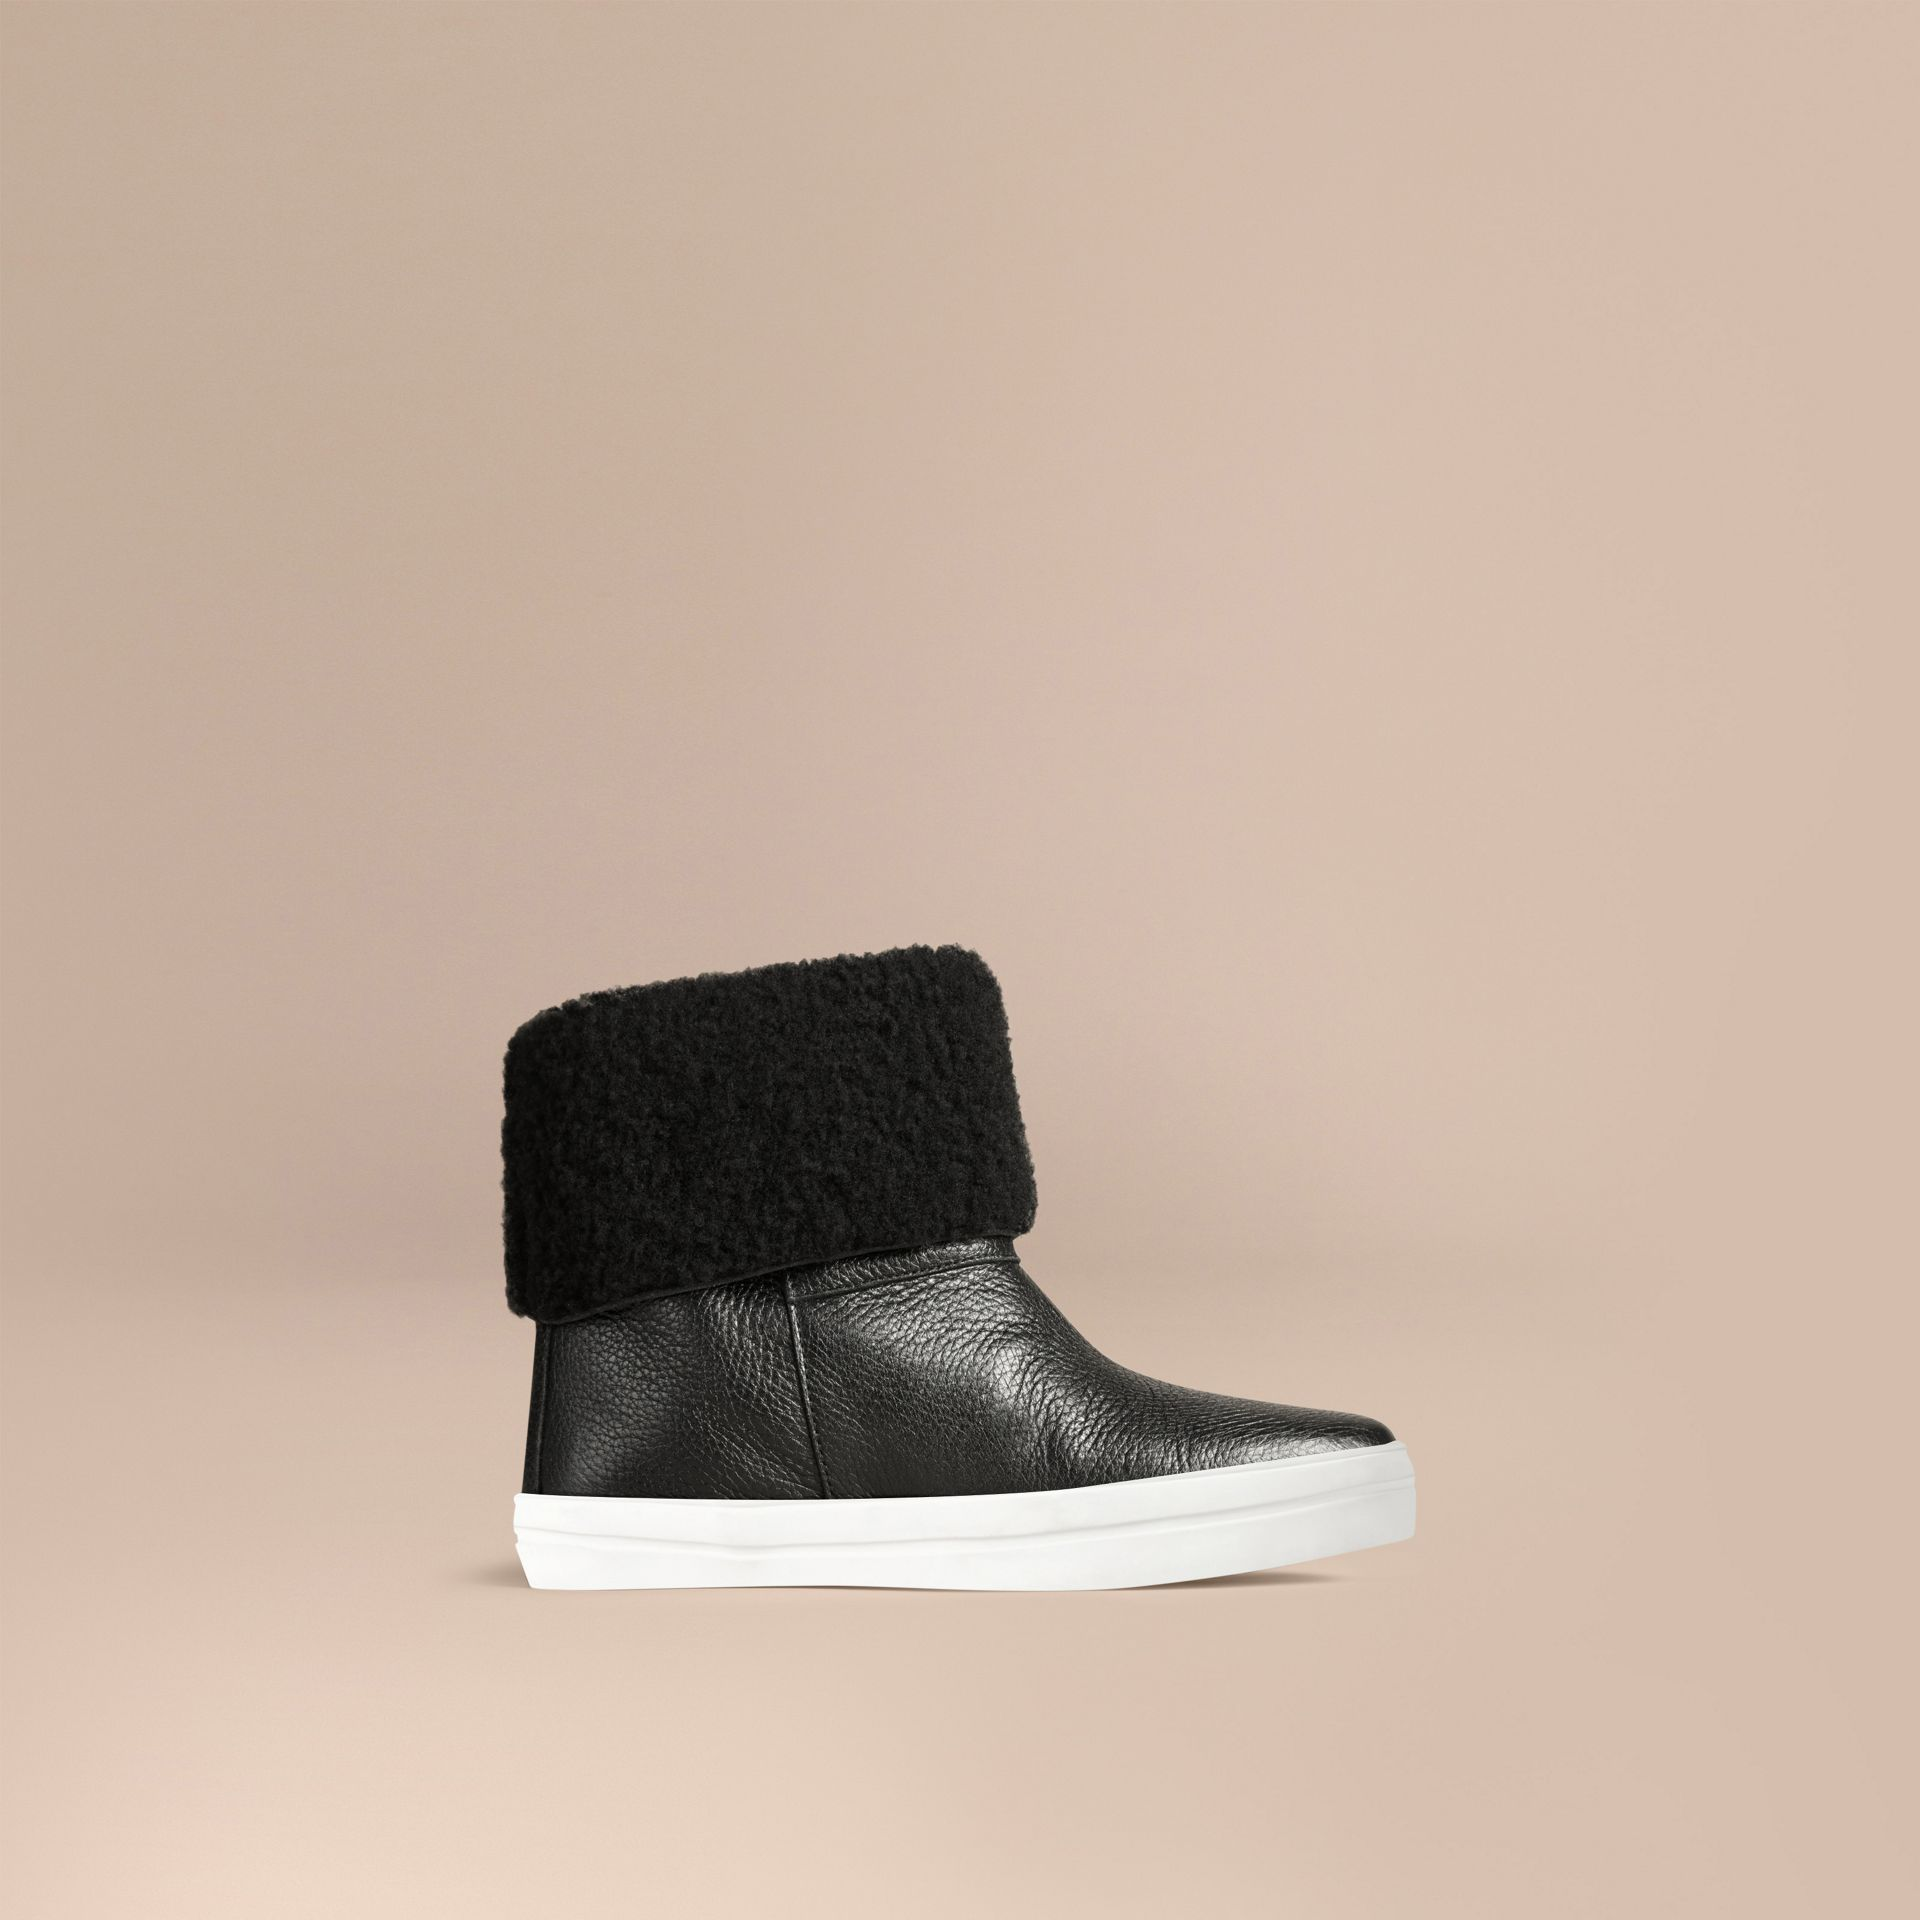 Shearling-lined Grainy Leather Ankle Boots in Black - Women | Burberry United States - gallery image 3